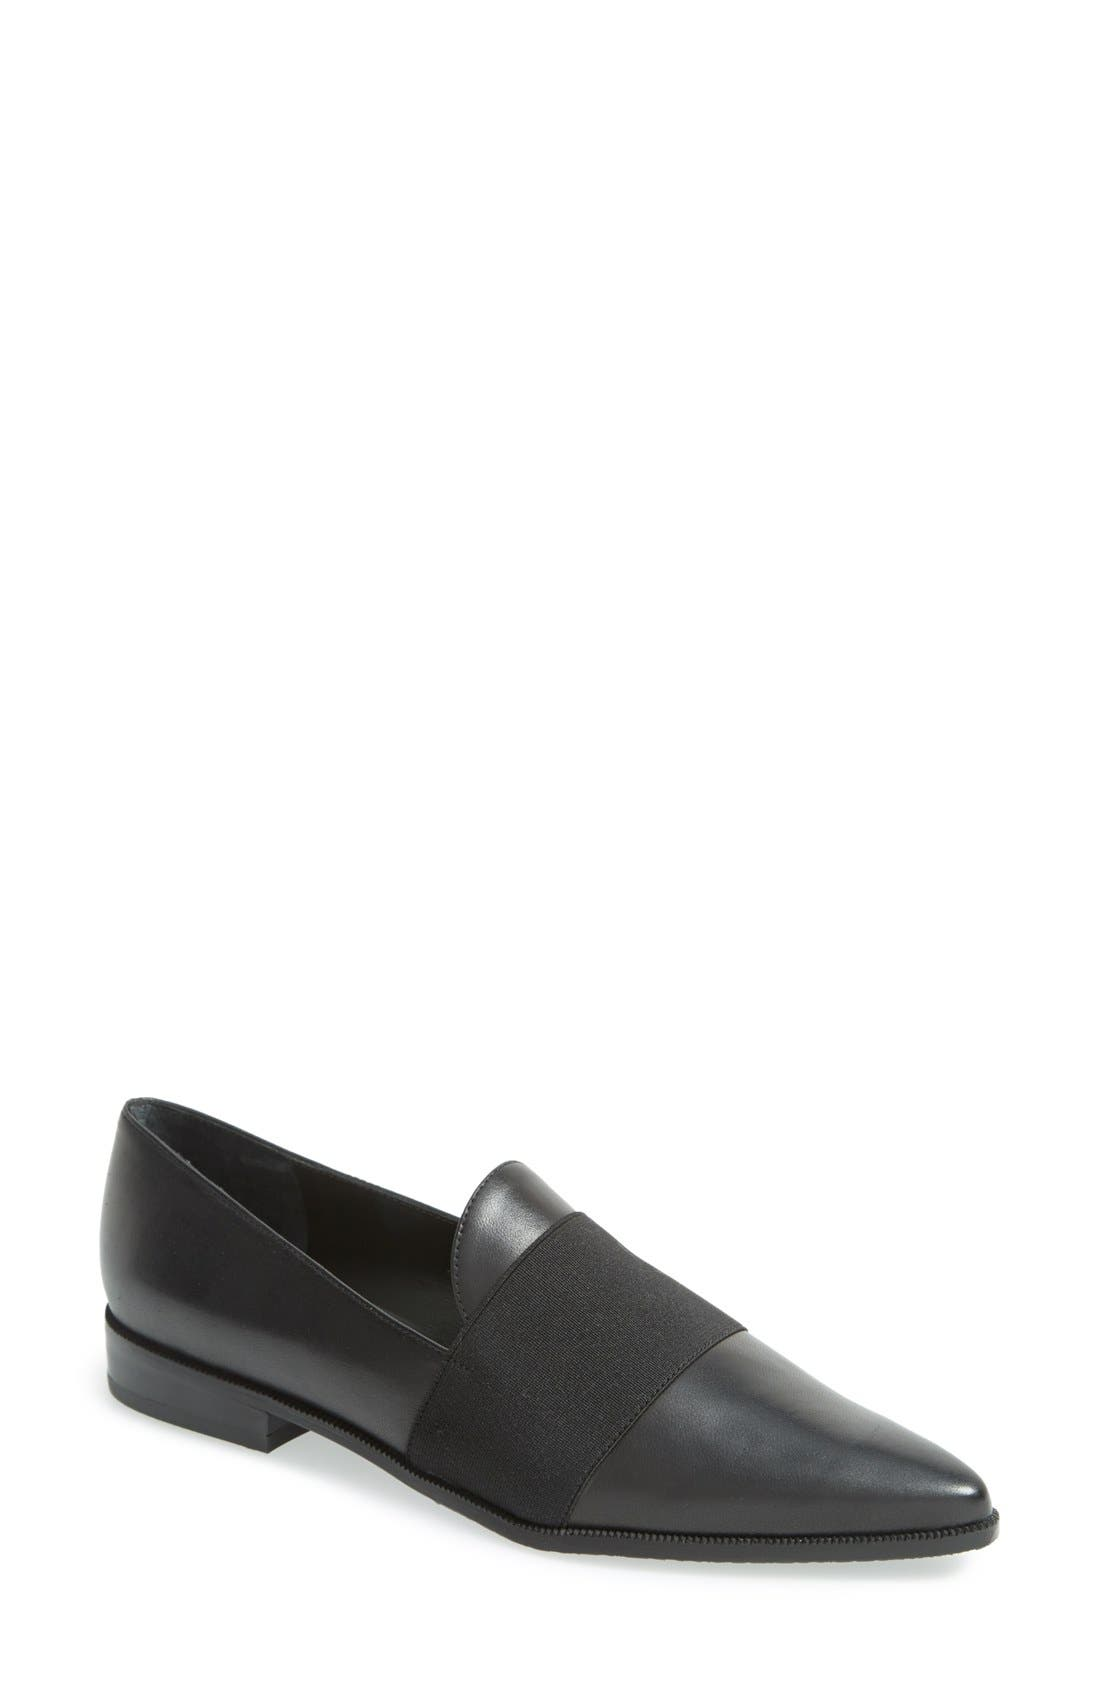 Alternate Image 1 Selected - Stuart Weitzman 'The Band' Flat (Women)